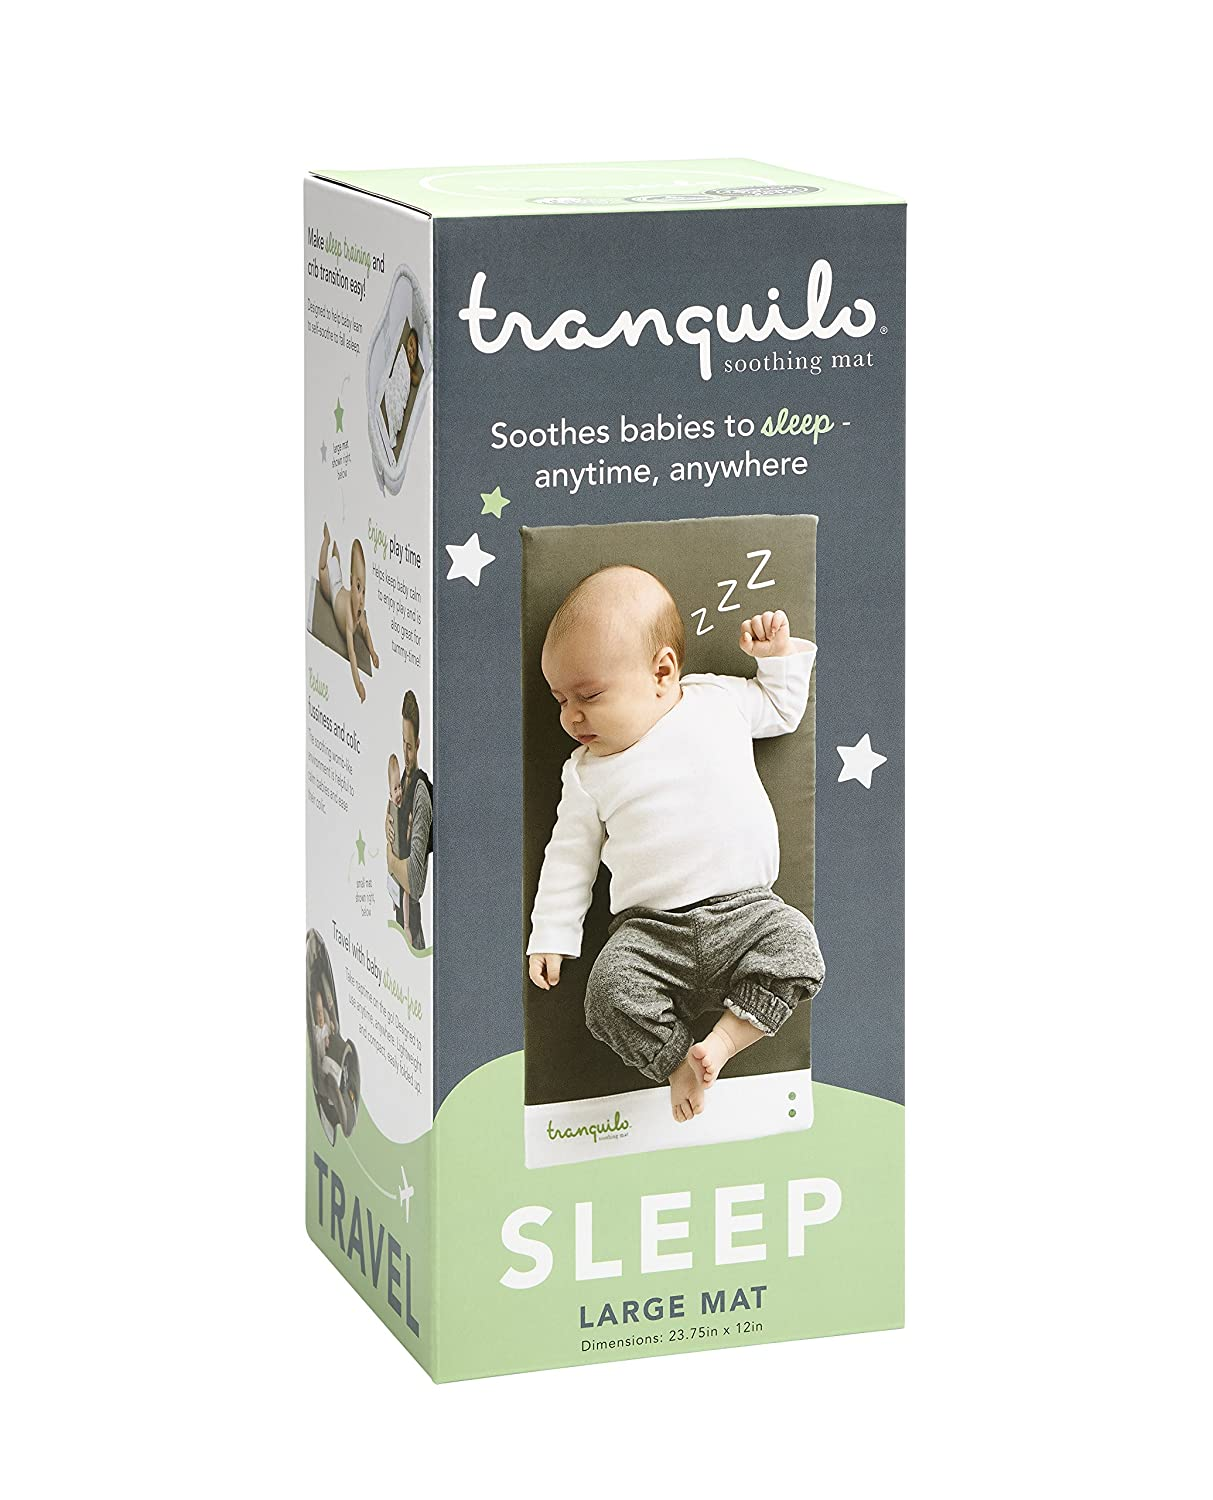 Tranquilo Mat: Portable Soothing Vibrating Baby Mat for Sleep & Playtime & Colic - Large: Infant 0-12 Months Tranquilo Inc. TM002L